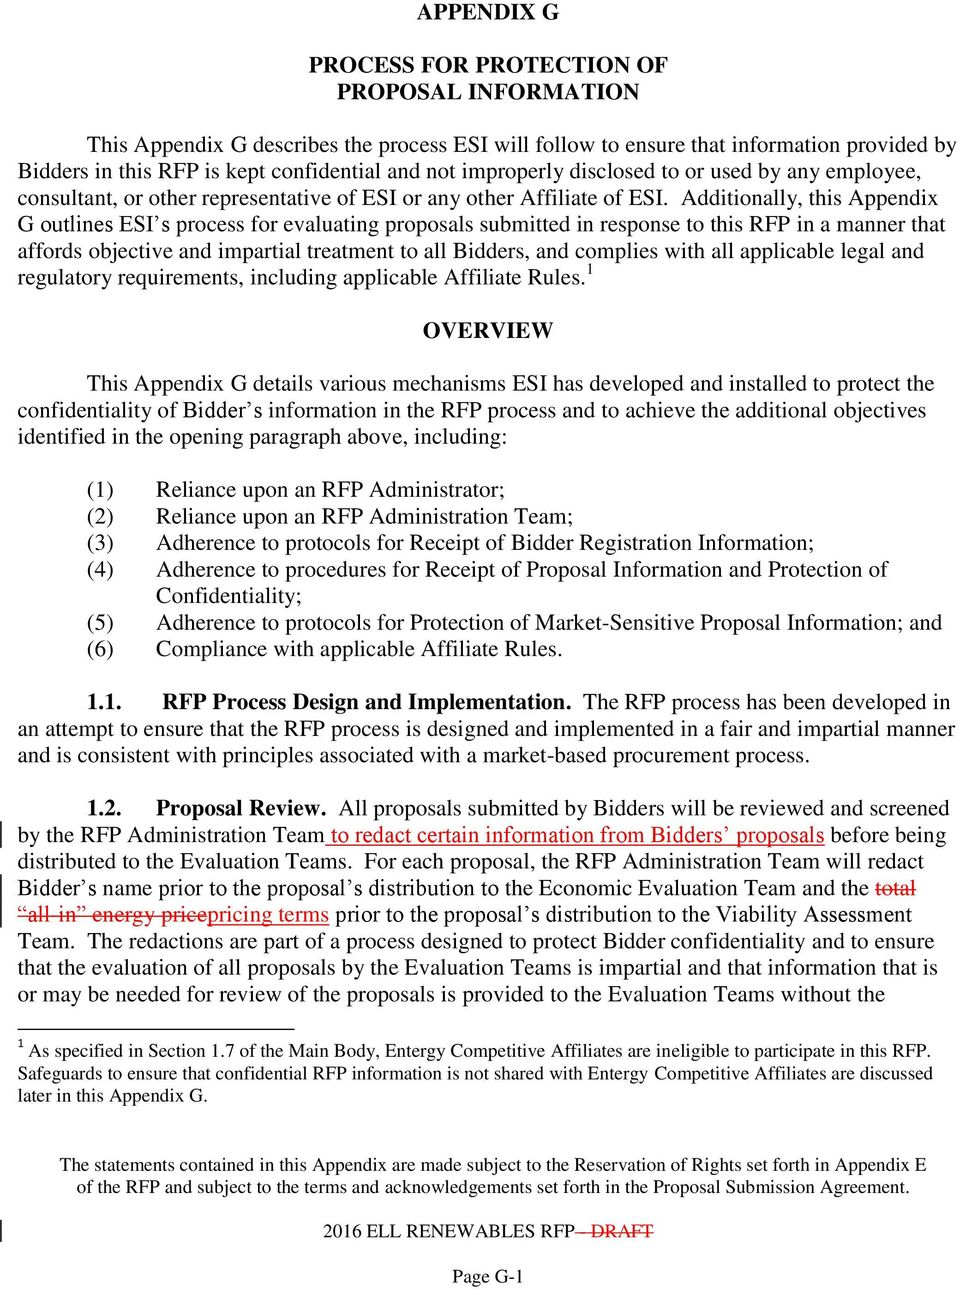 Additionally, this Appendix G outlines ESI s process for evaluating proposals submitted in response to this RFP in a manner that affords objective and impartial treatment to all Bidders, and complies